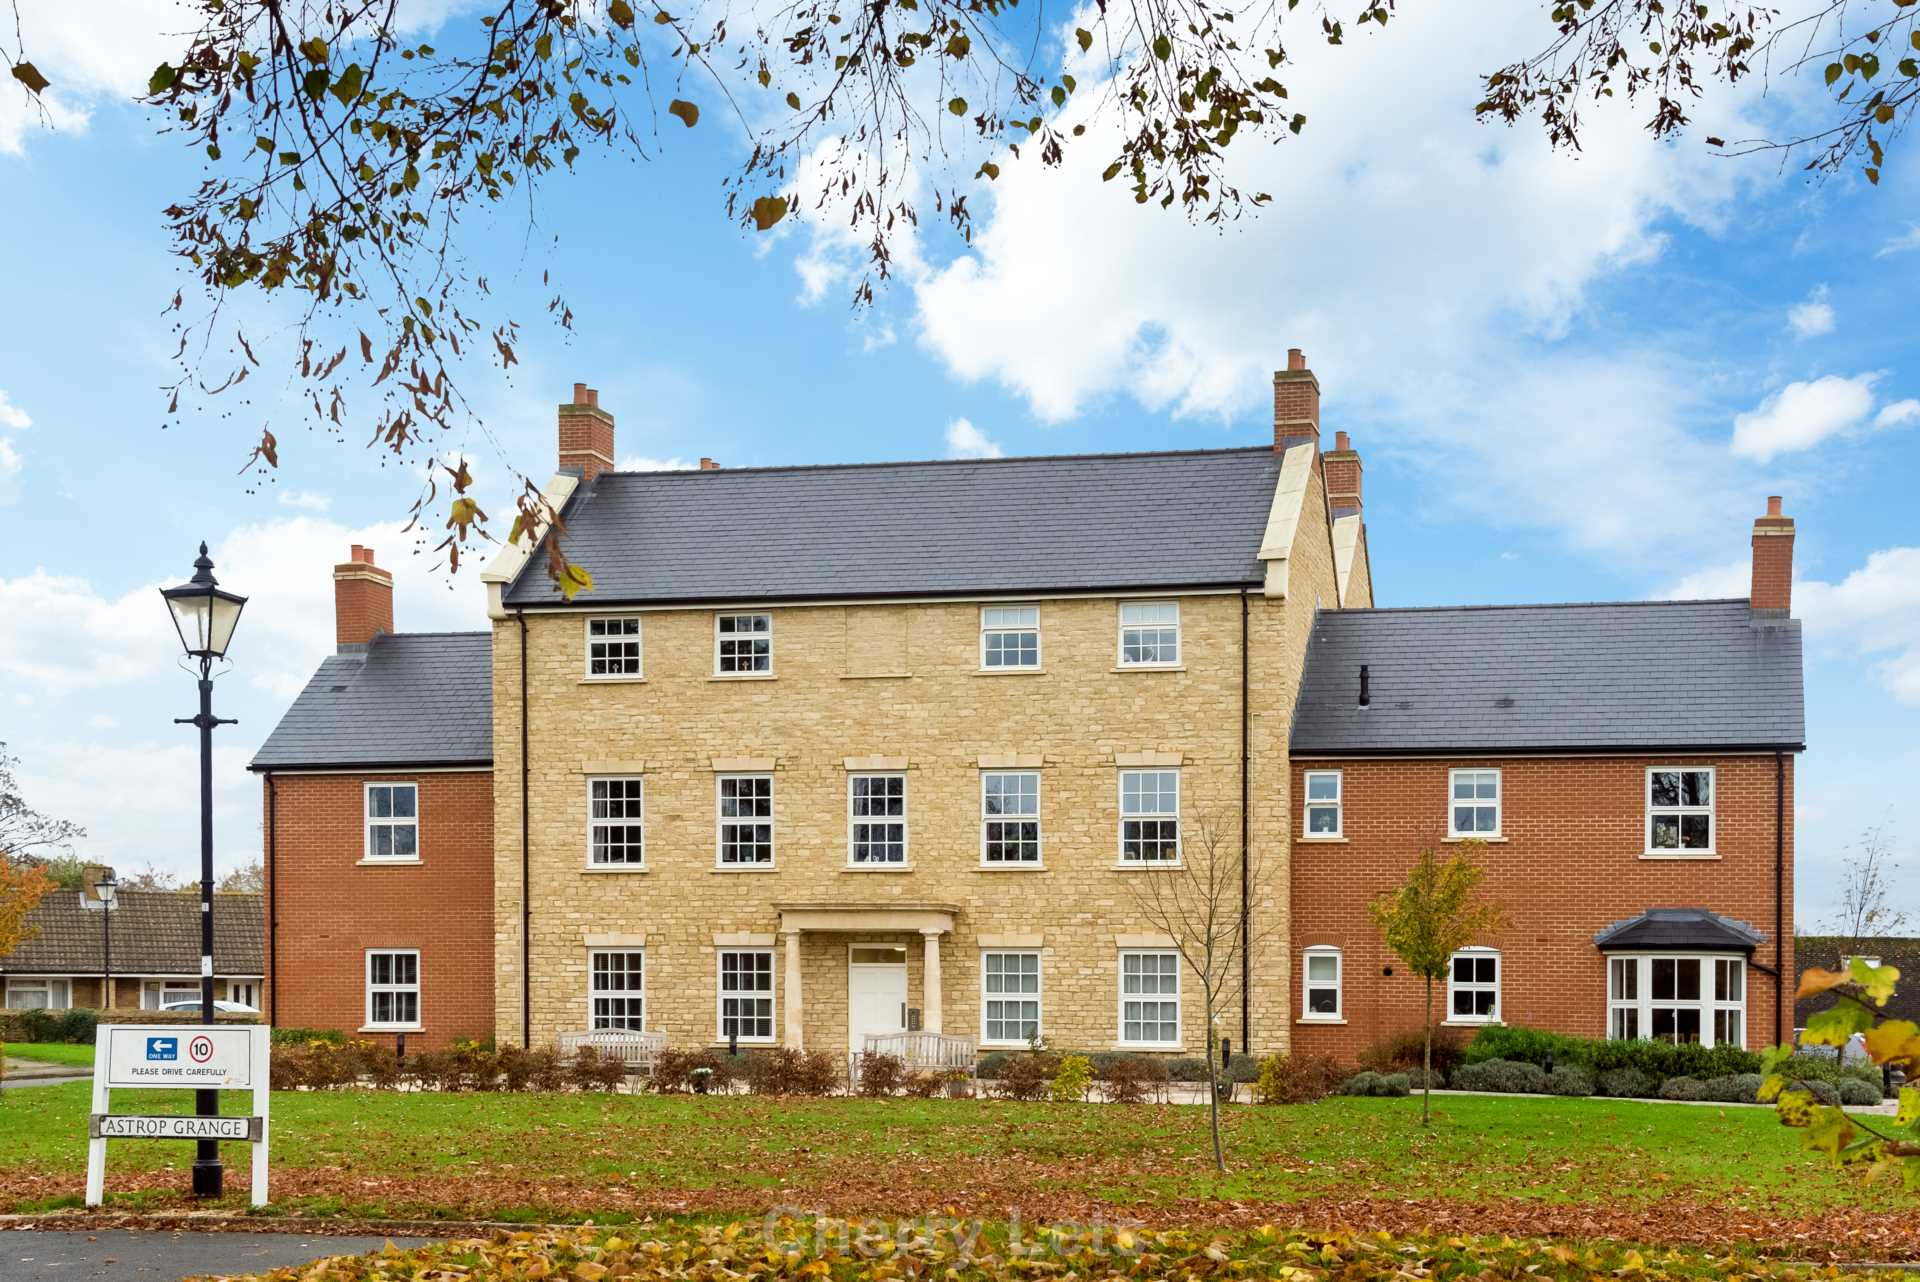 2 bed apartment to rent in Astrop Grange, Kings Sutton, OX17  - Property Image 13